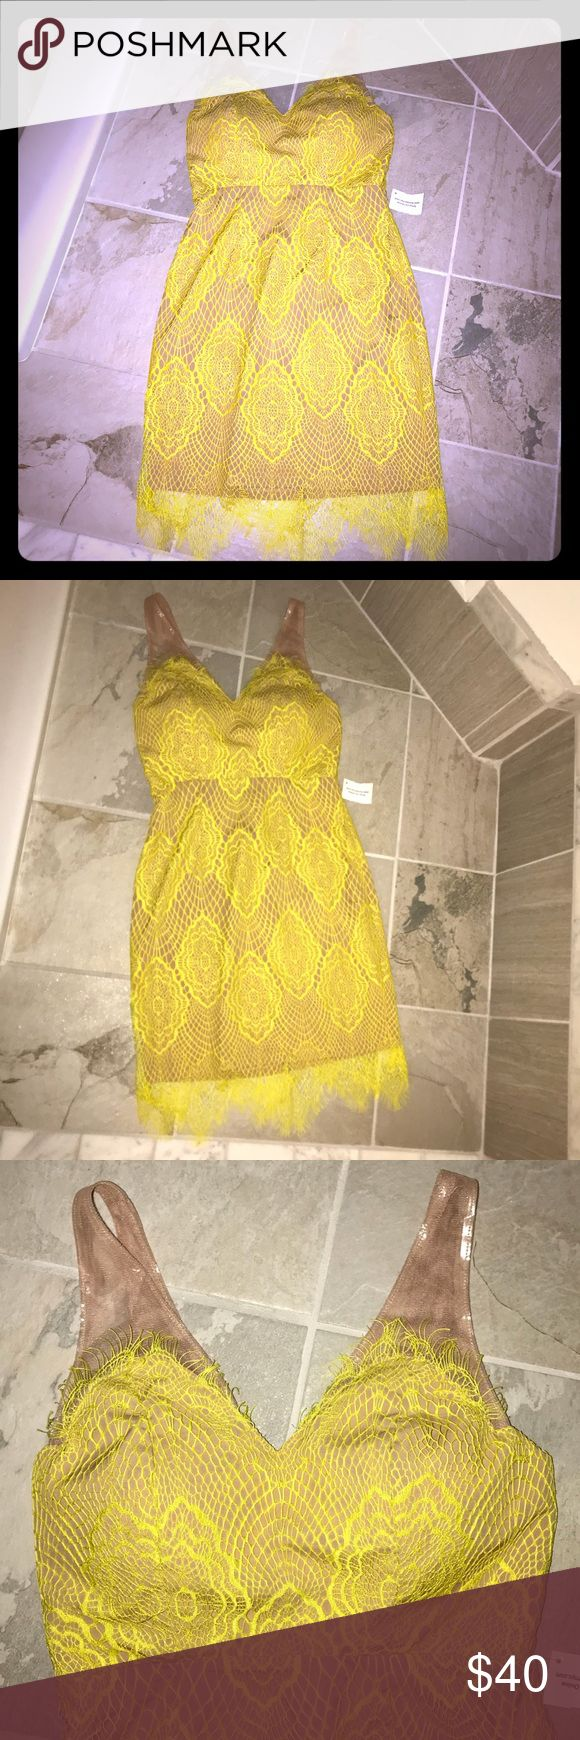 NEW eyelash lace neon yellow dress with nude slip Brand new and never worn. Beautiful lemon drop yellow eyelash lace dress with wispy fringe. Nude underlay slip with nude mesh peek a boo straps. Zip up back and padded bust so no bra is required. This is marked a size small. I believe it will fit a size 0-3 or a size 1. I am a size 34ddd bust and this fits fit in waist but a bit tight in bust. Not For love and lemons but definitely has that delicate vibe. Last photo for styling purposes only…